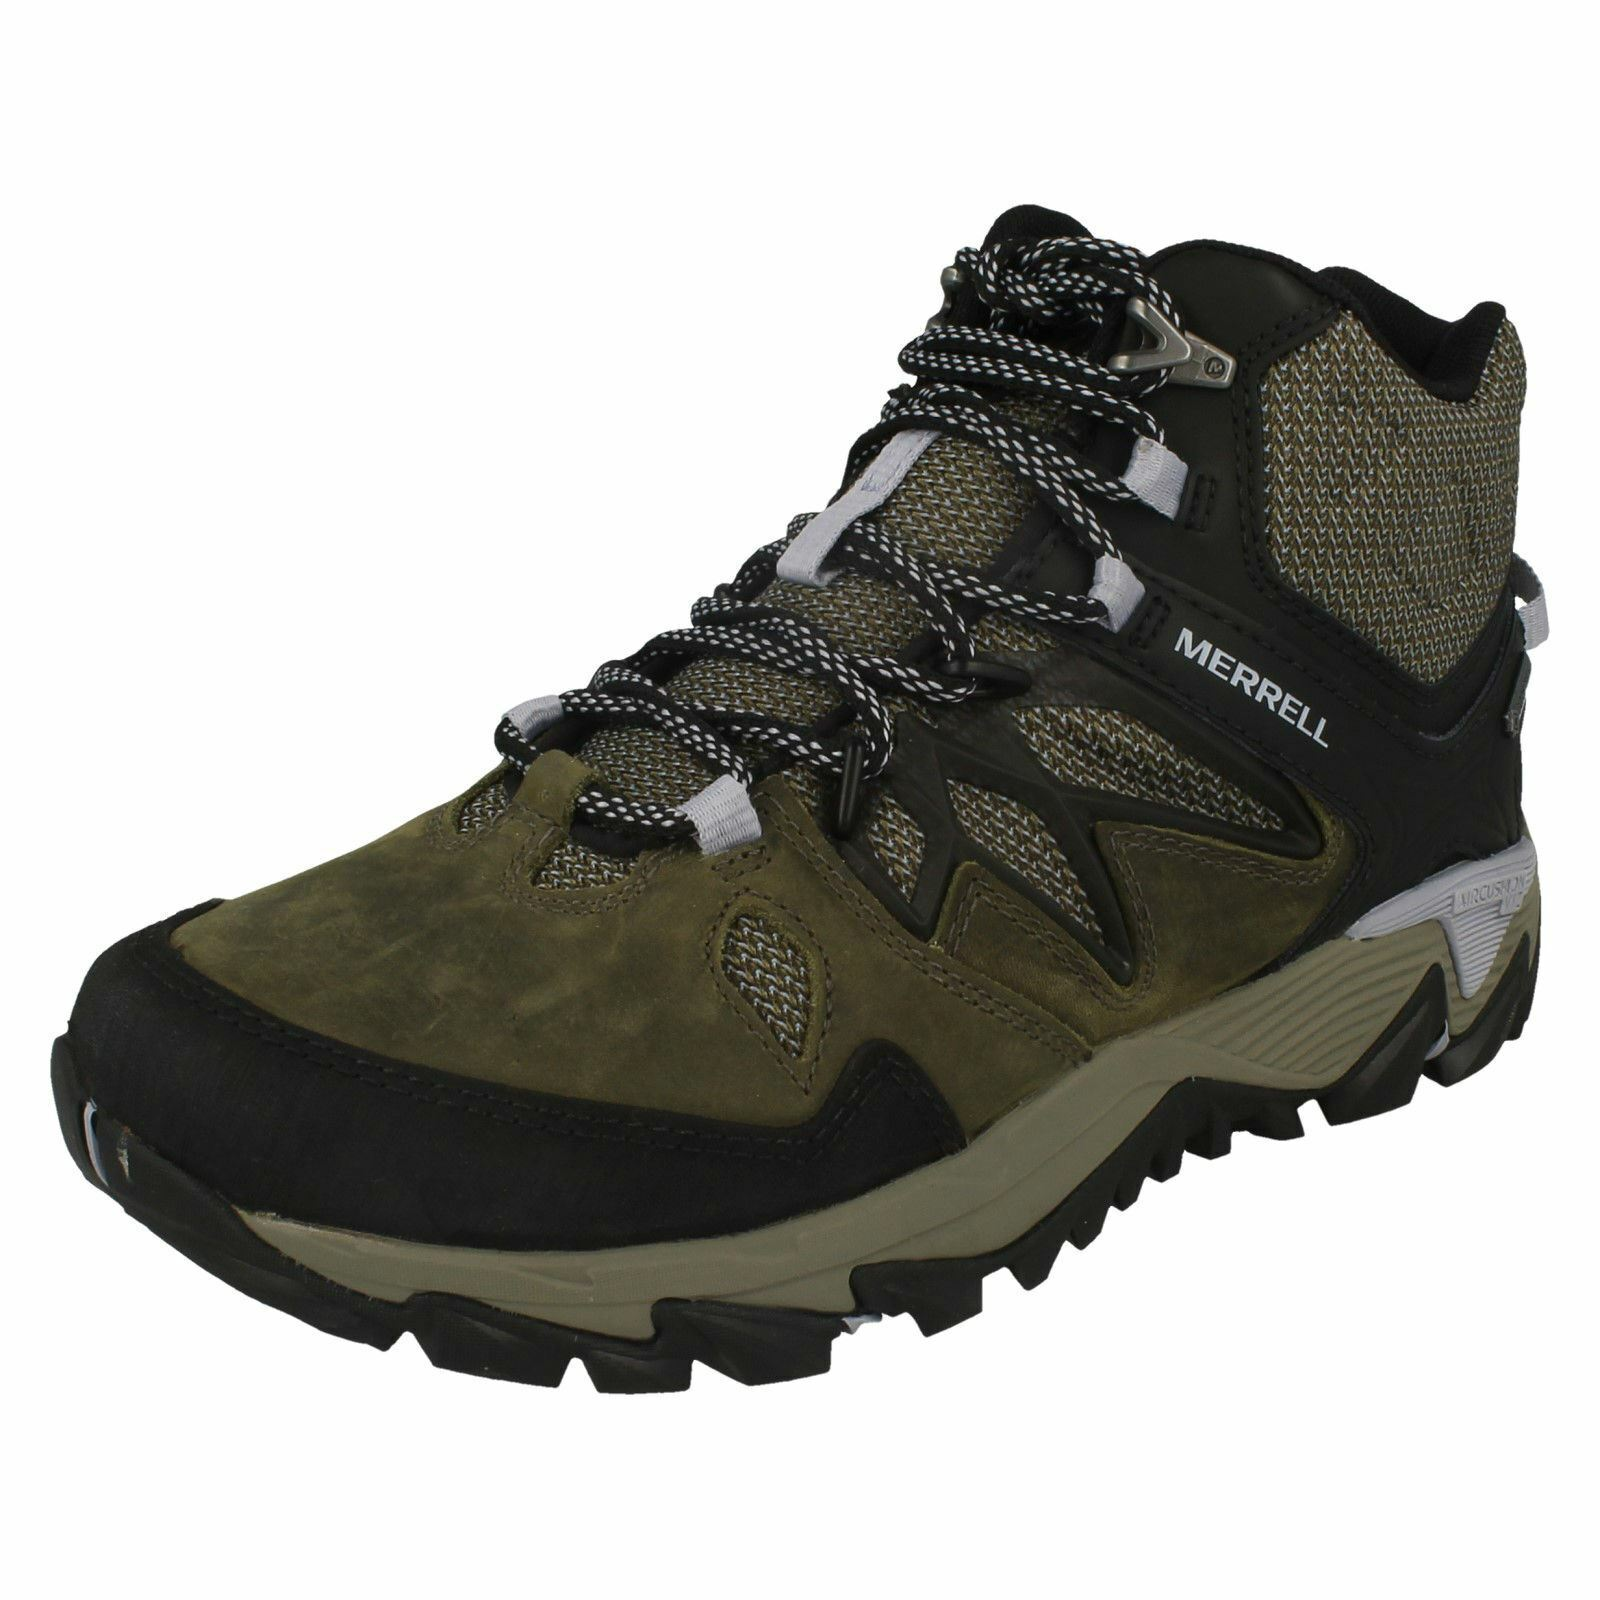 Femmes Merrell Lacets Casual Gore-Tex Walking bottes All Out Blaze 2 Mid